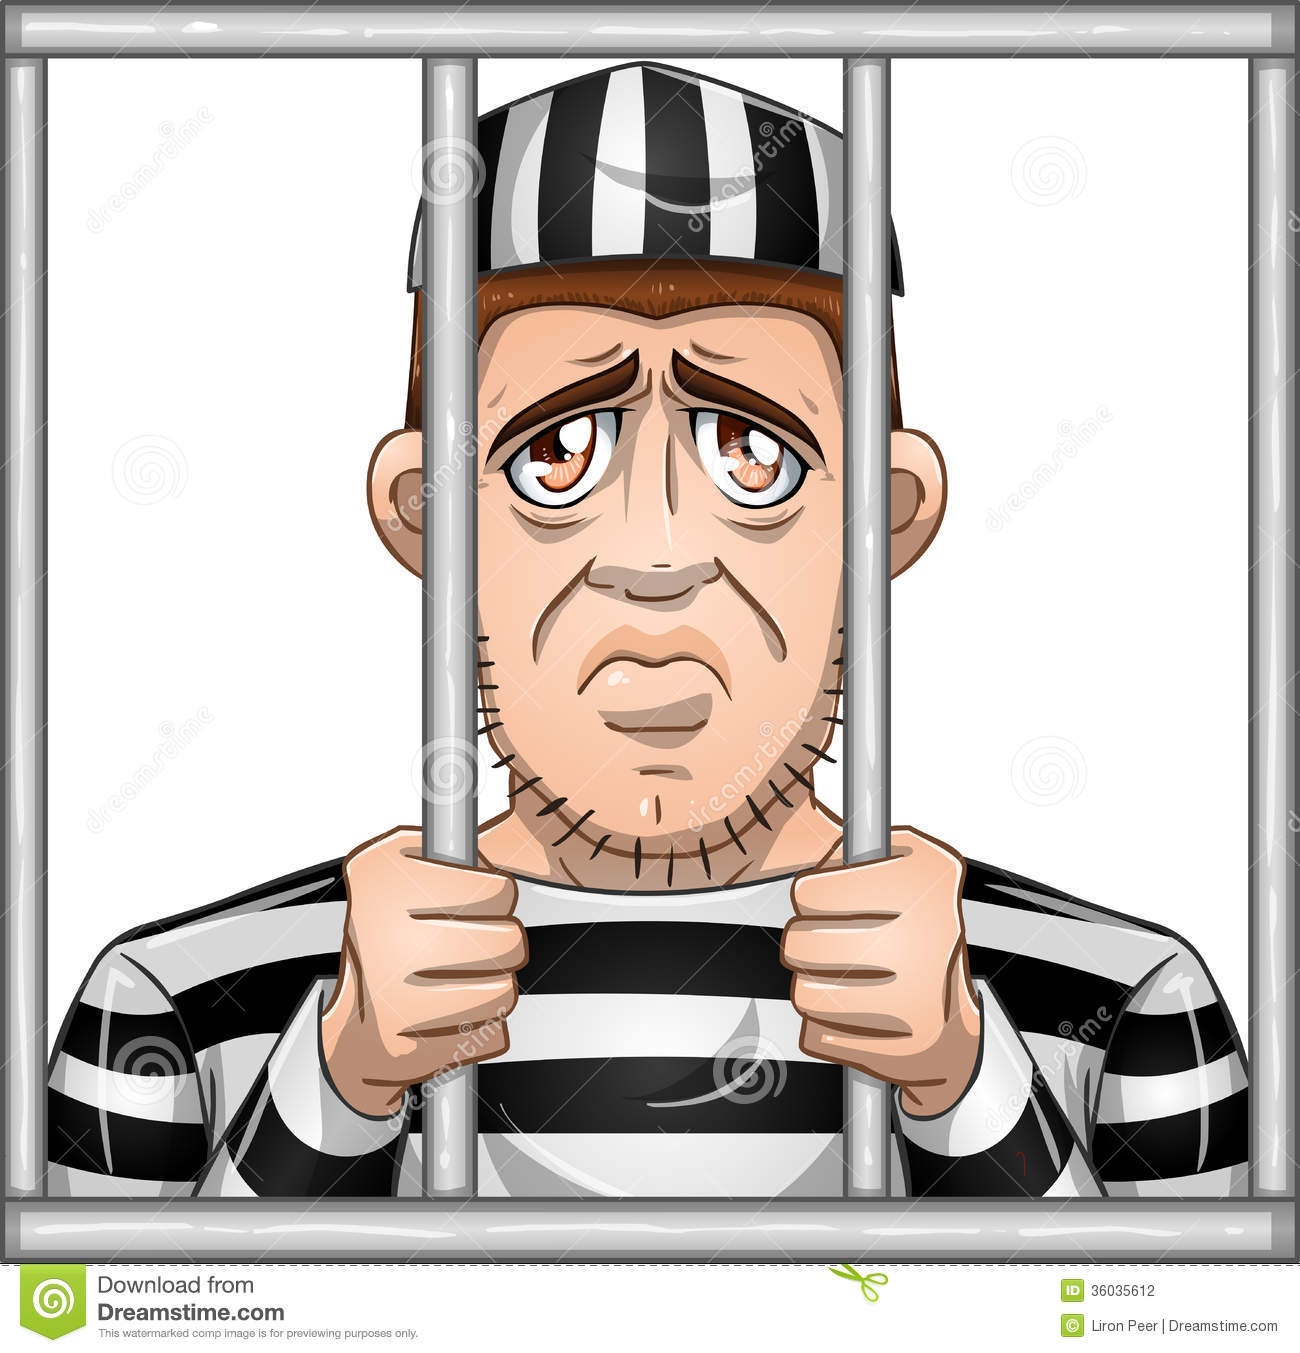 Behind Bars Clipart.